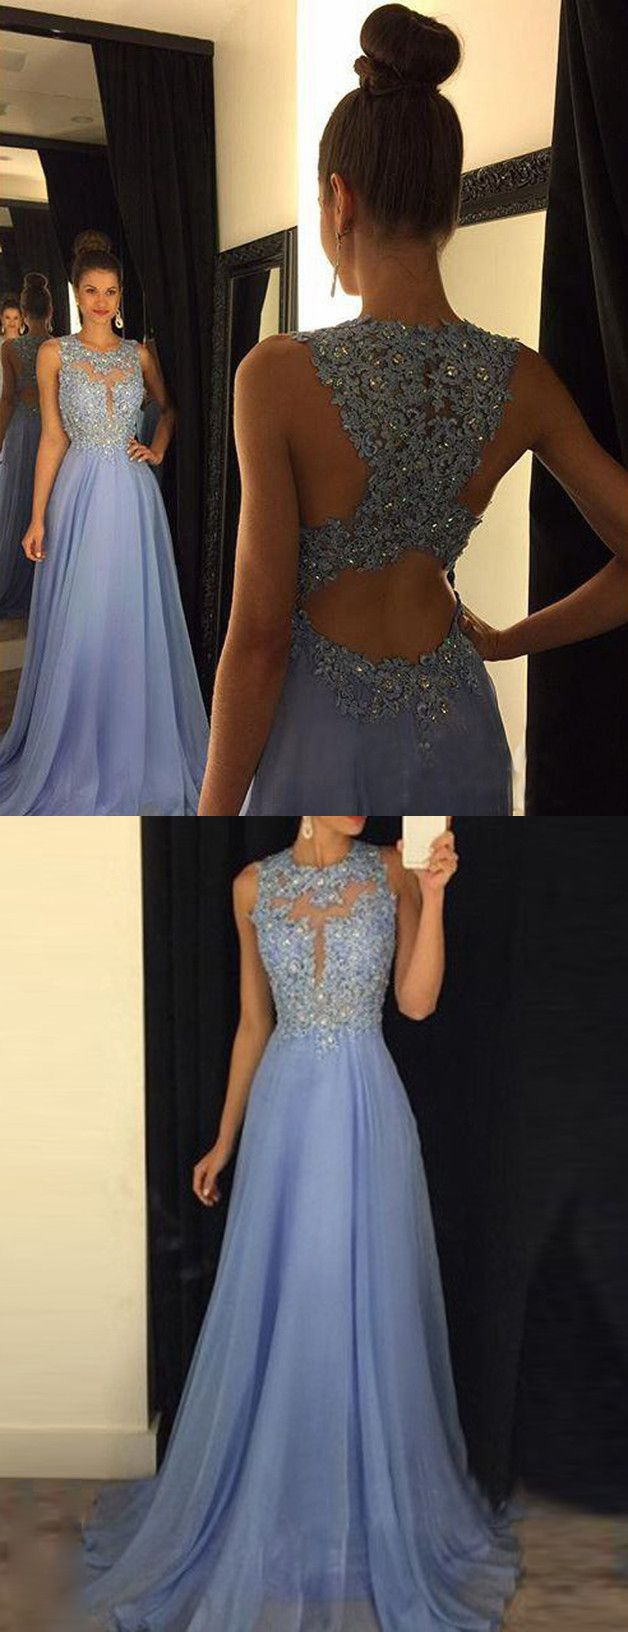 52 best Kleider images on Pinterest | Prom dresses, Evening gowns ...